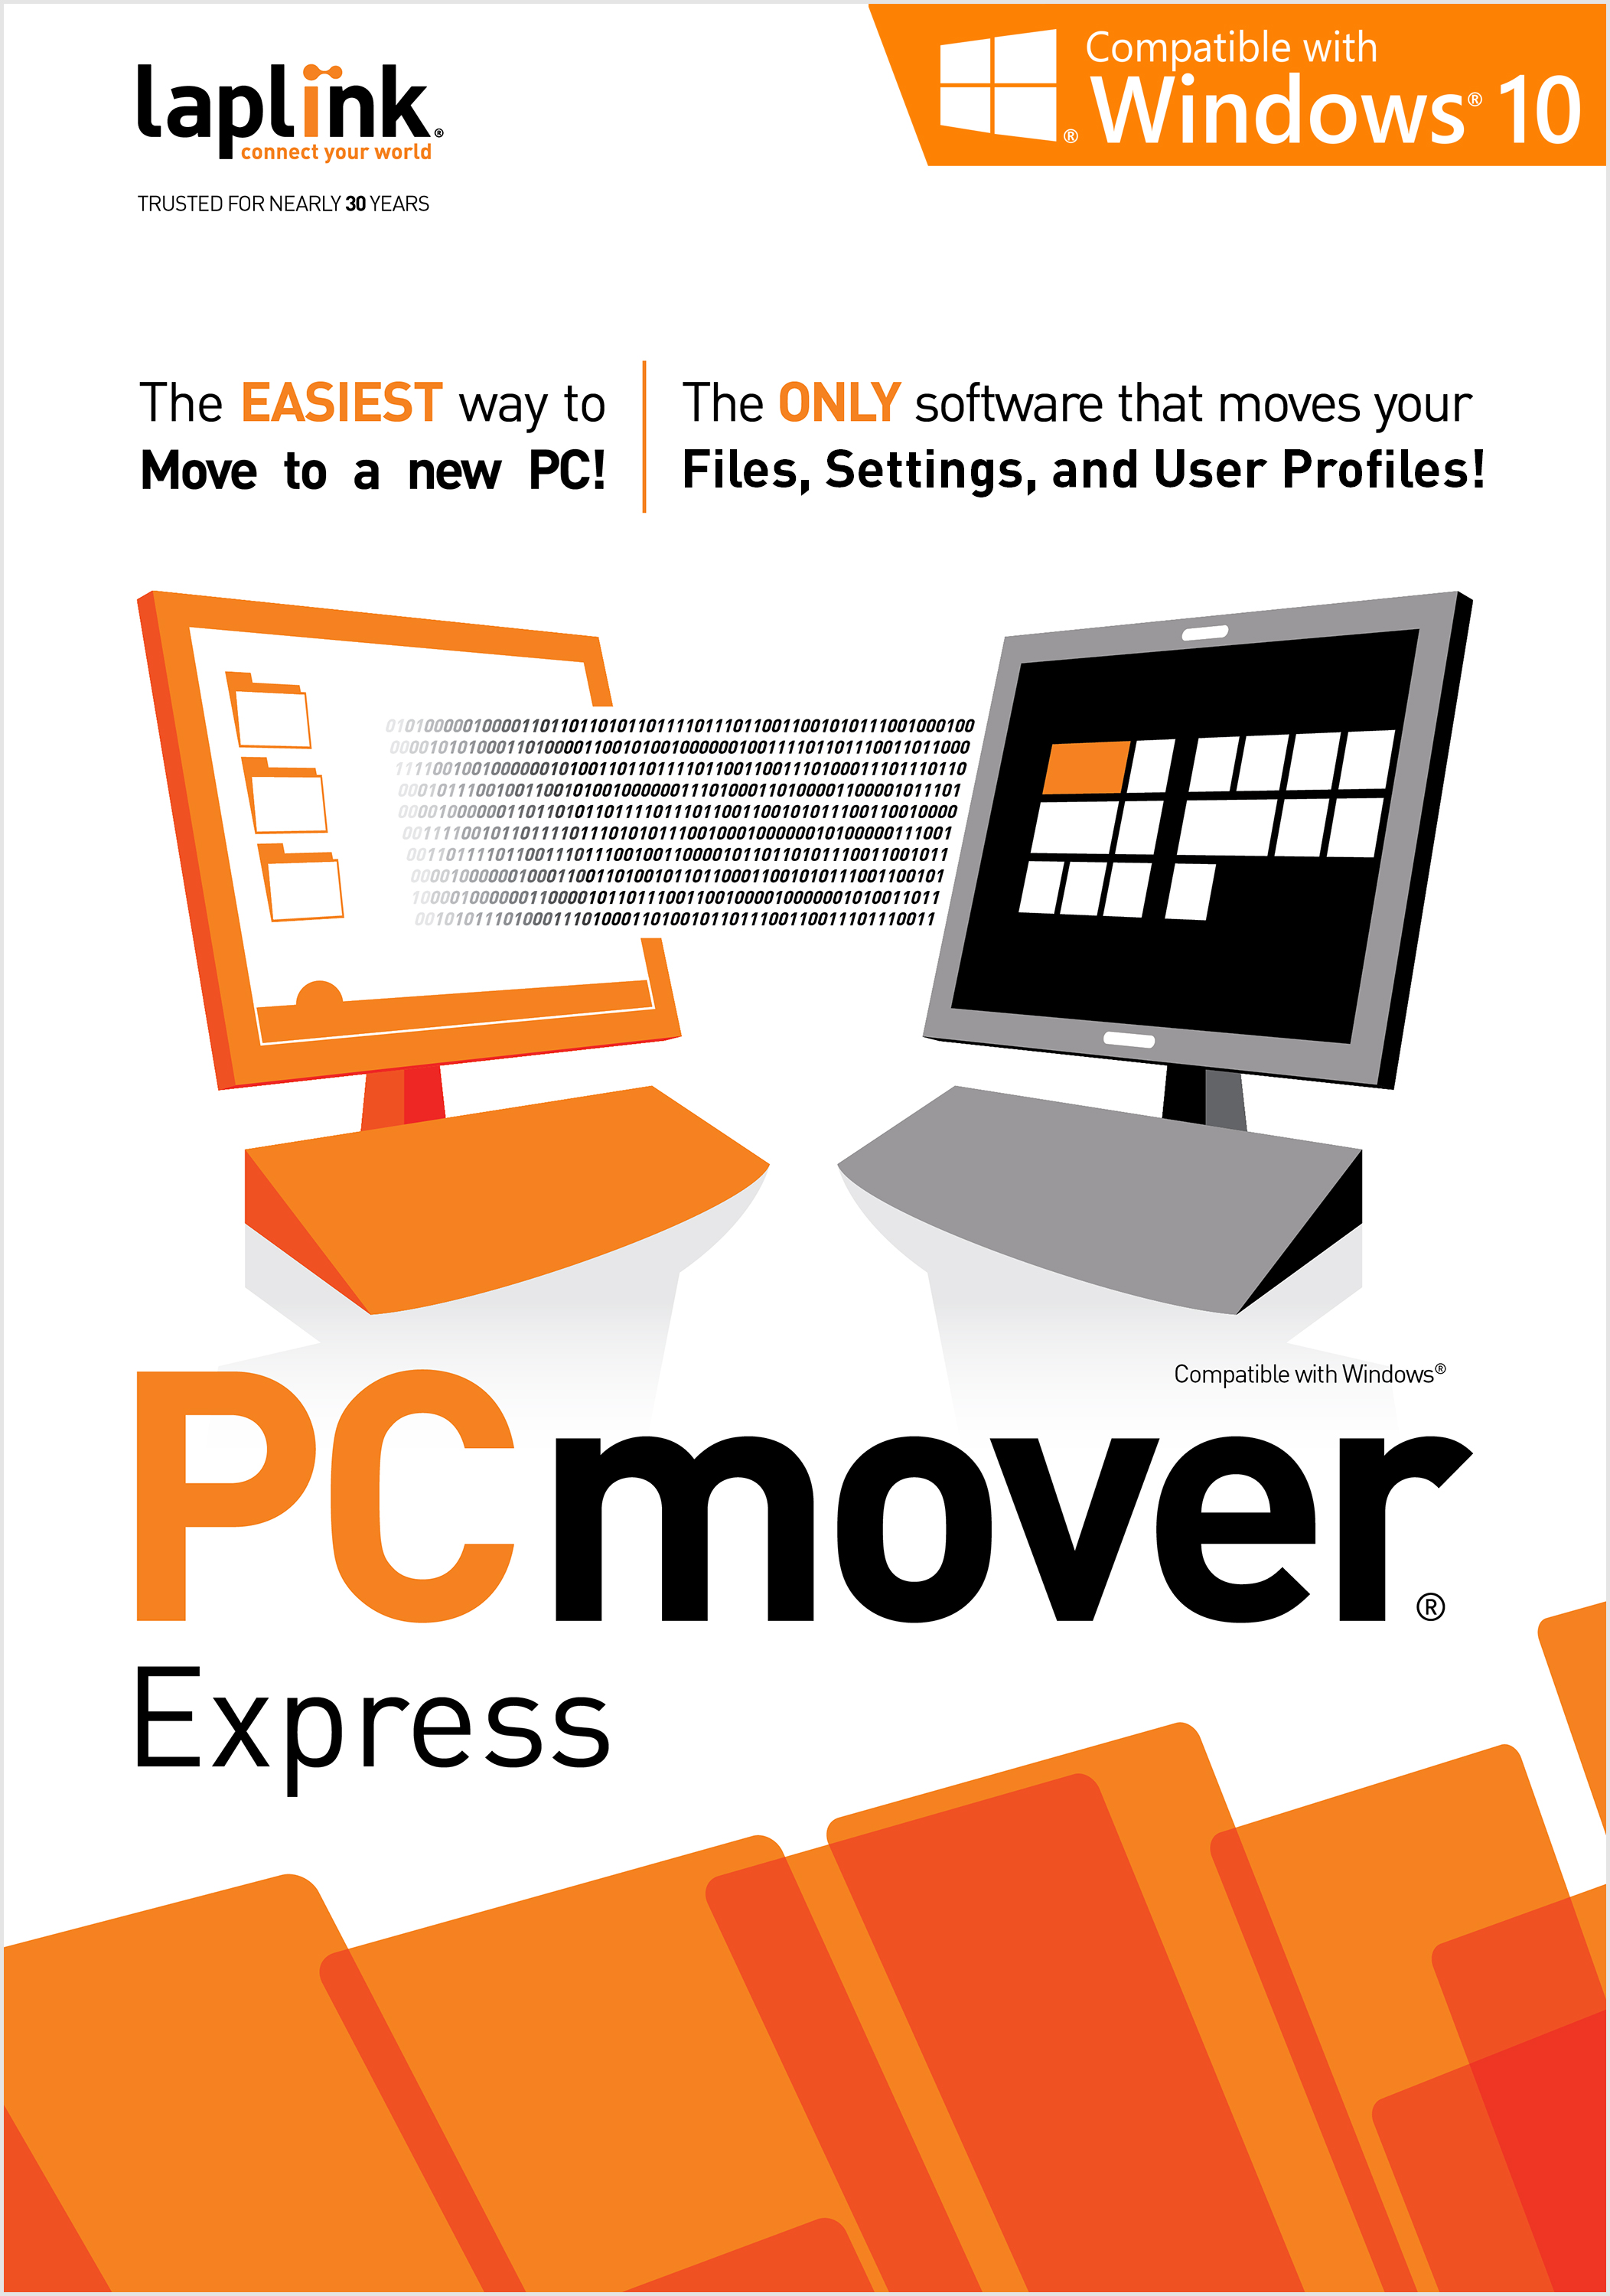 How to leave windows xp using pc mover express video dailymotion.